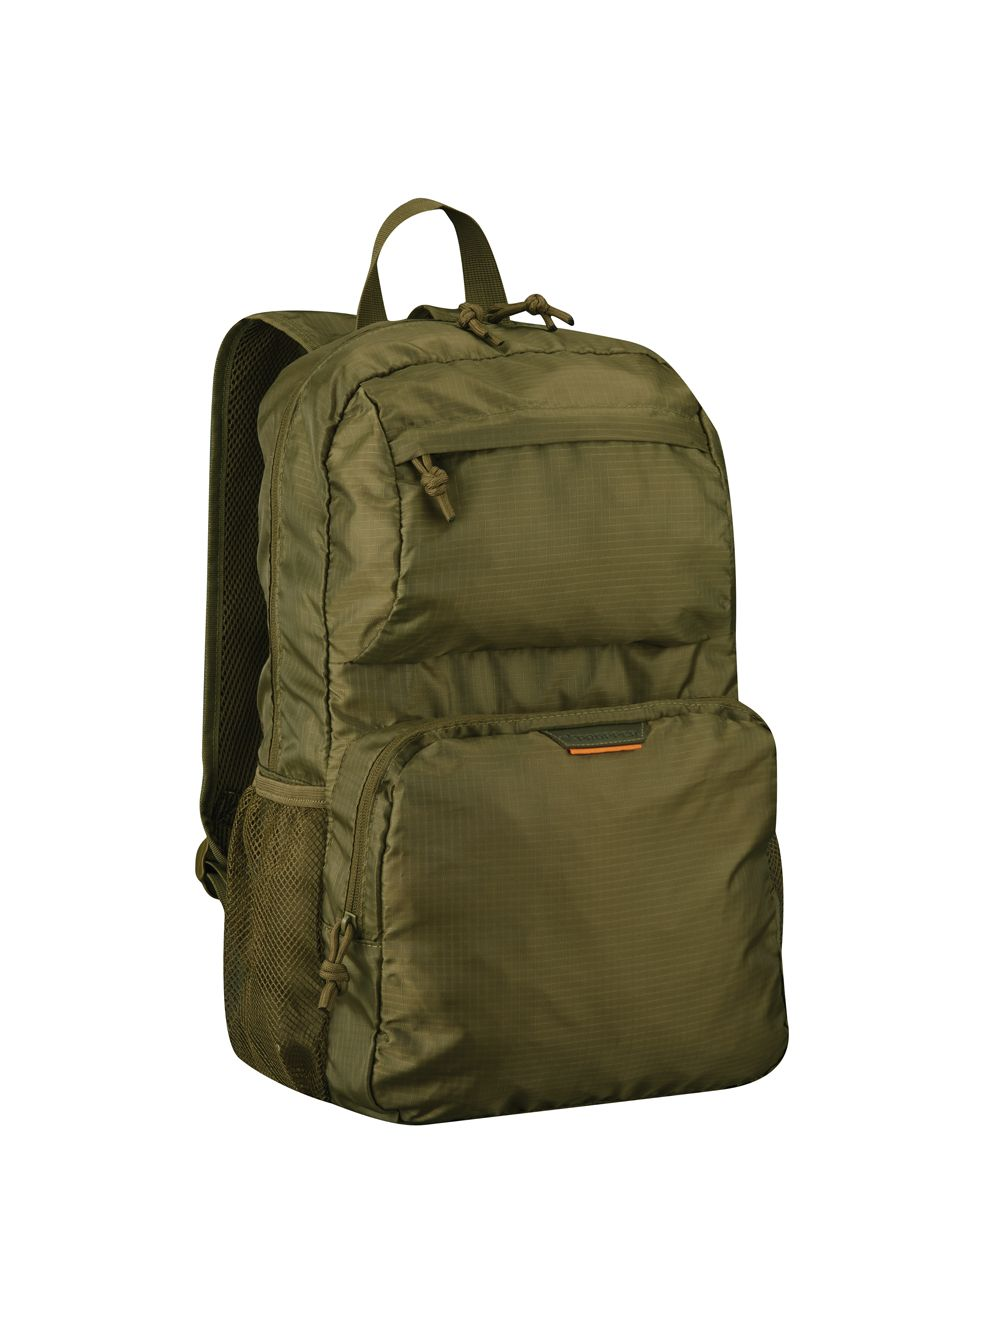 Propper - Packable Backpack - Olive Green - F5688